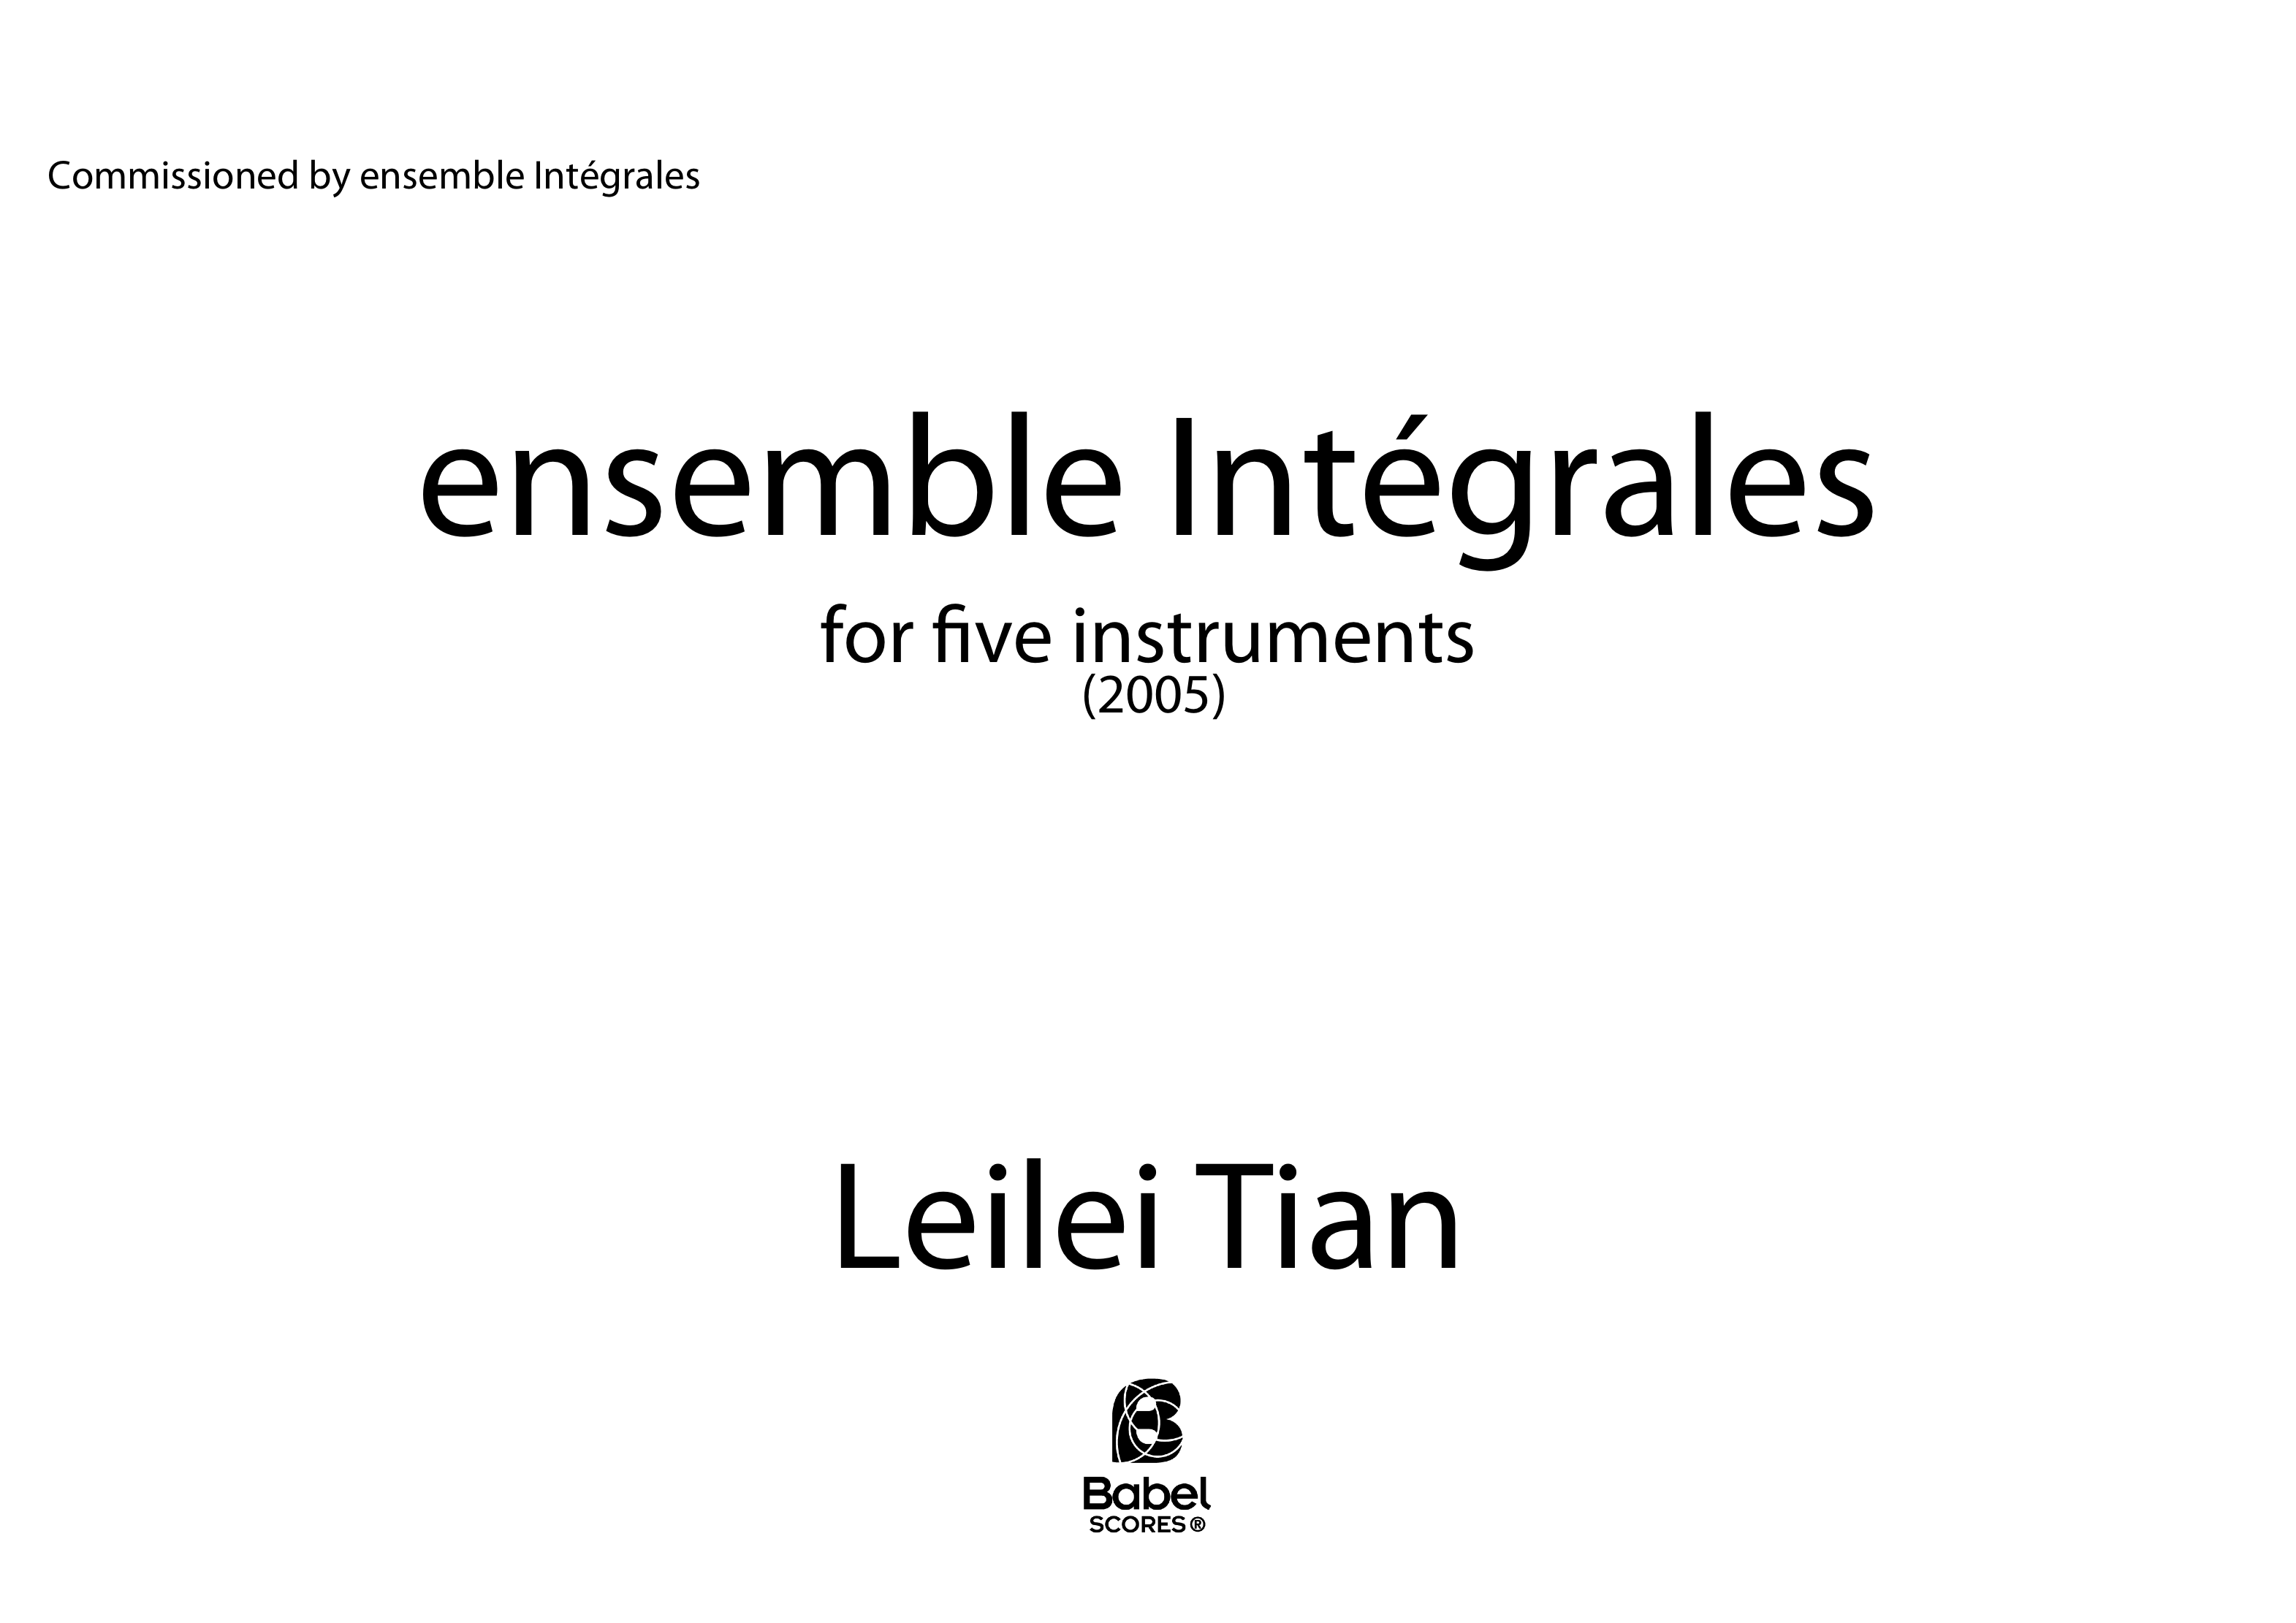 ensemble Integrales score z